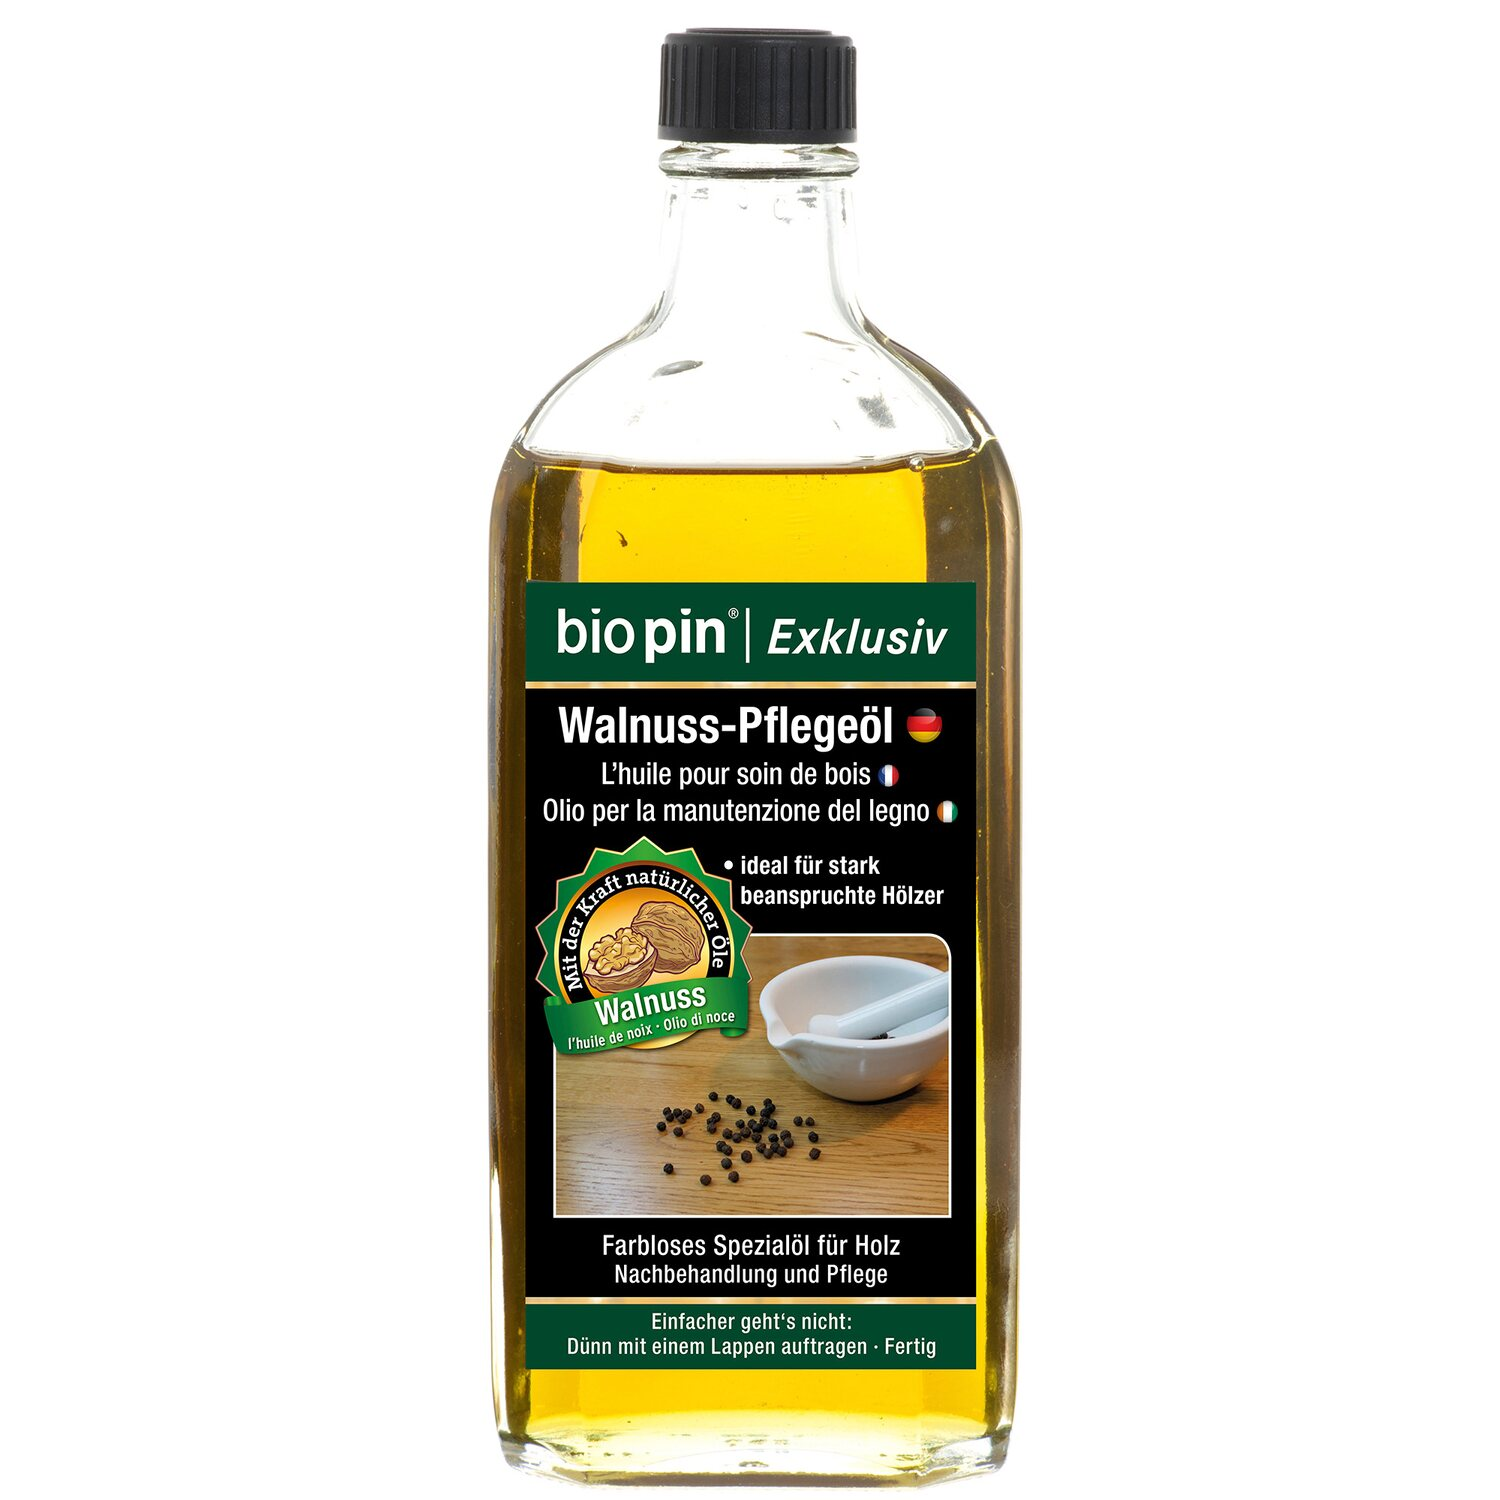 Biopin  Exclusiv  Walnuss-Pflegeöl Transparent 250 ml